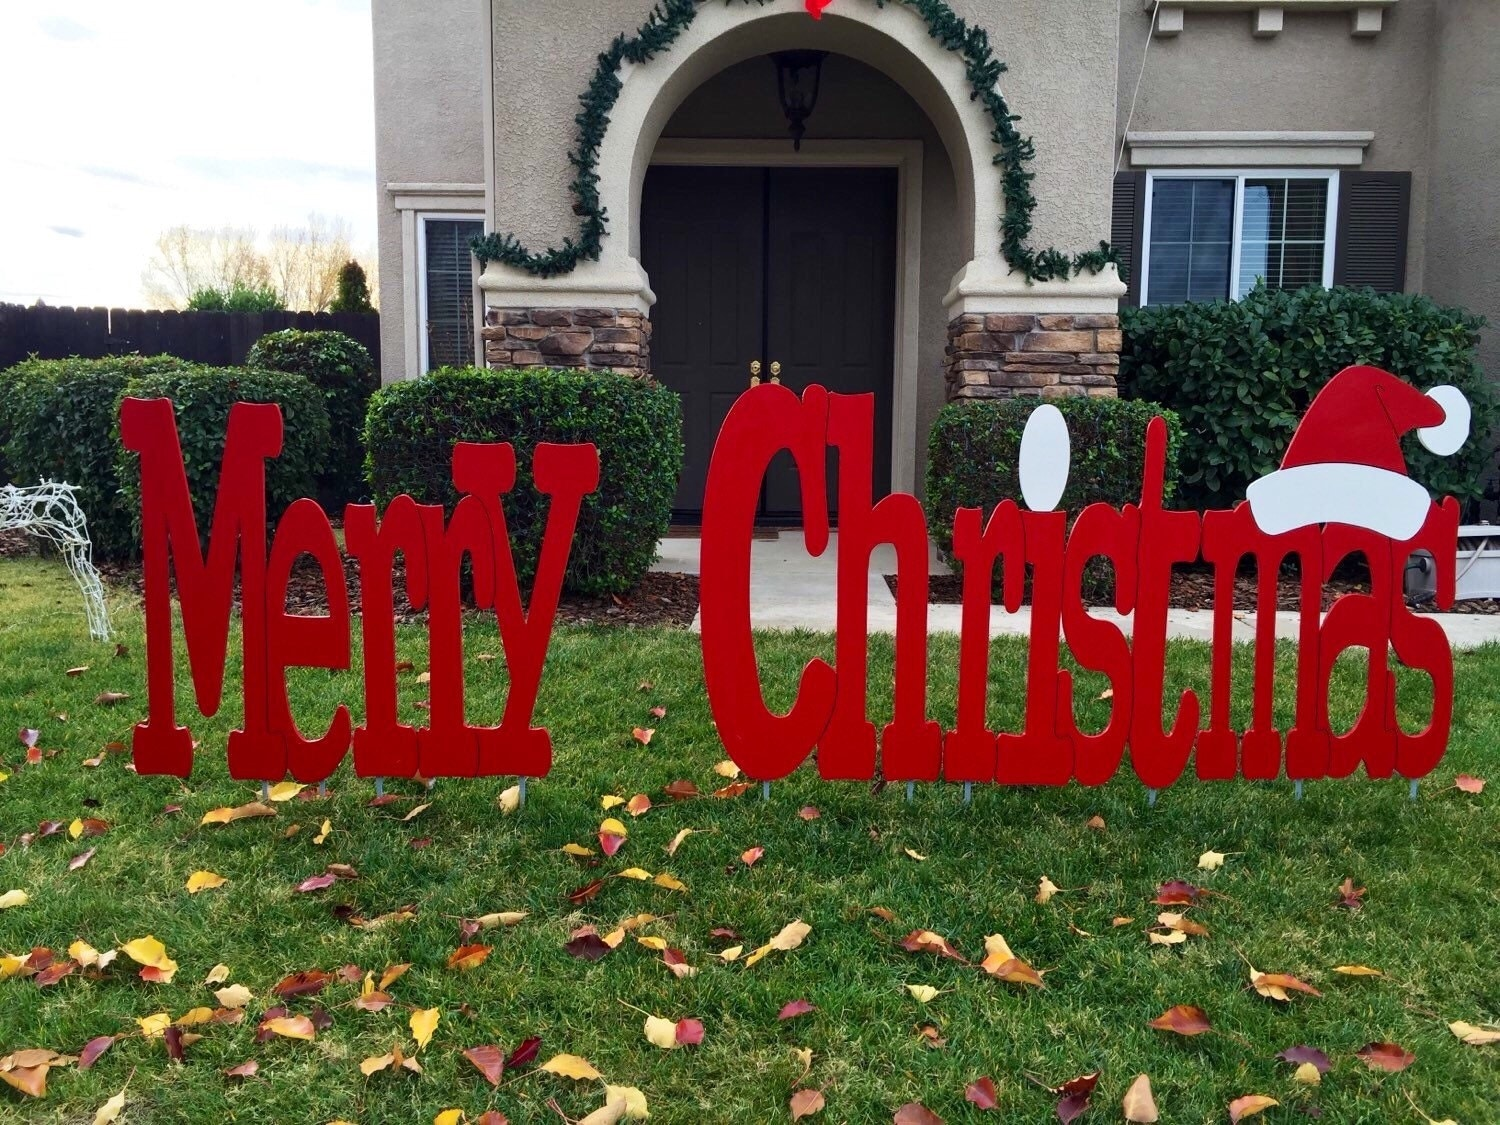 Merry christmas outdoor holiday yard art sign large for Christmas lawn decorations